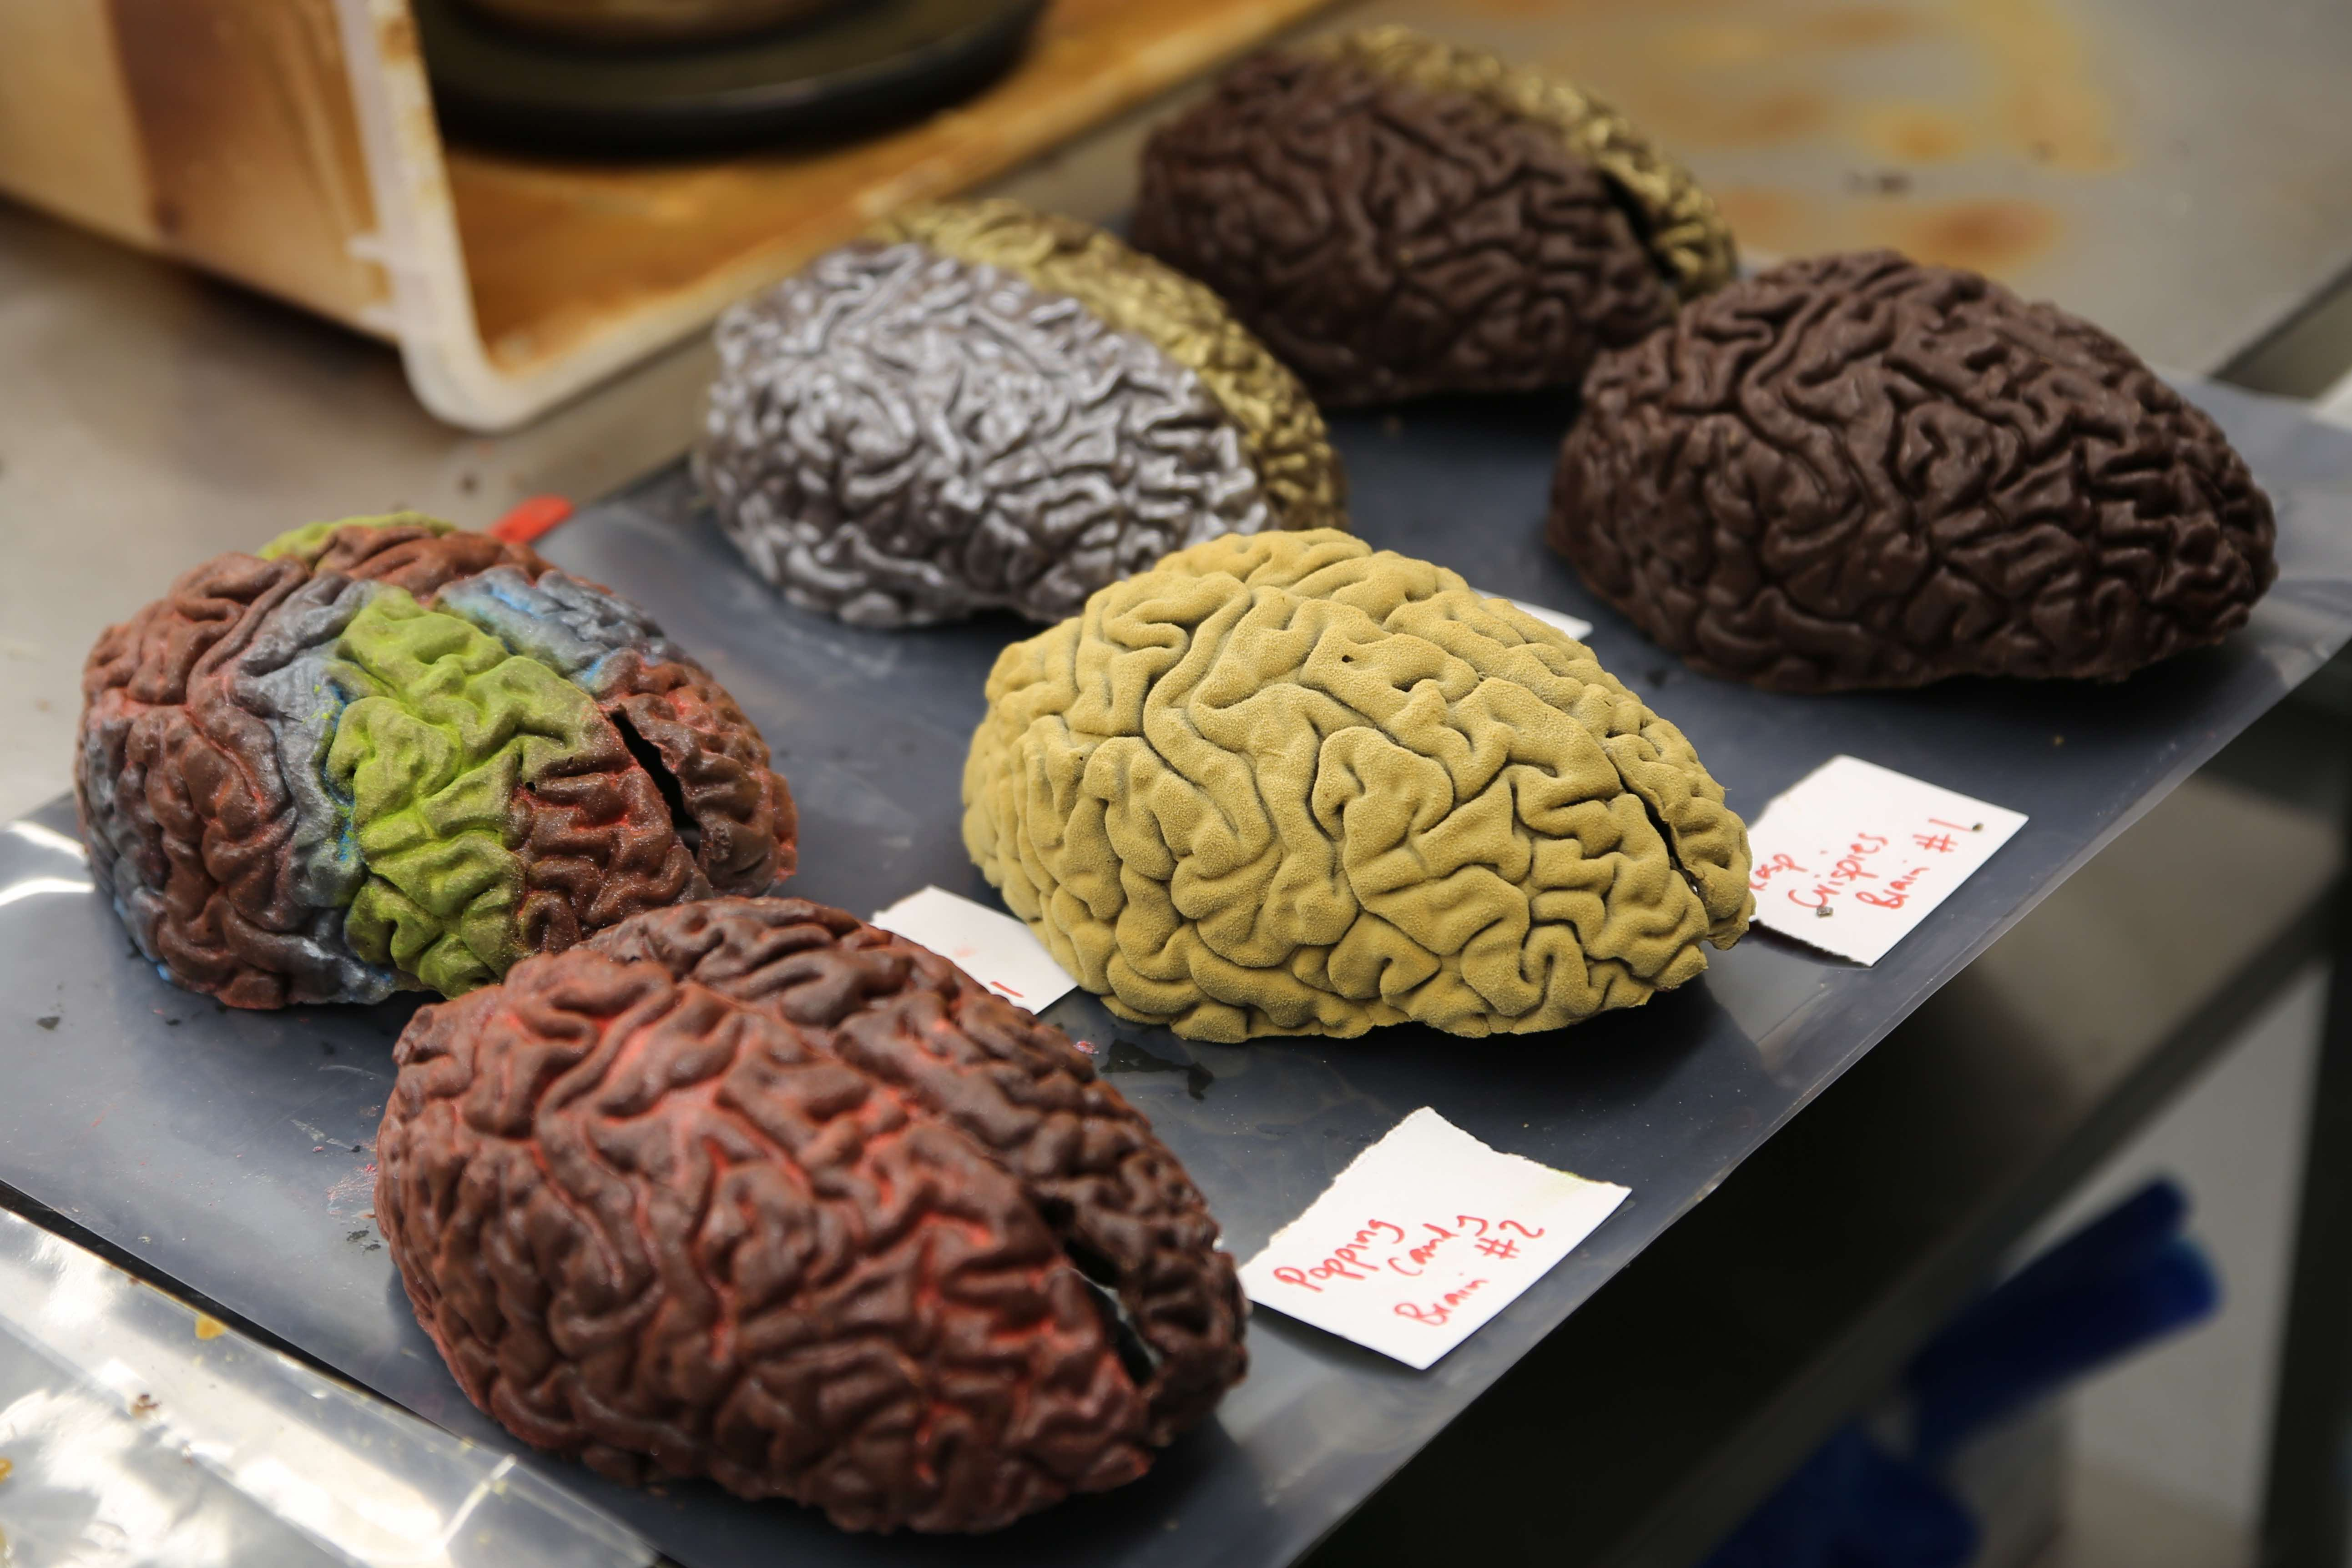 Jake Fairnie's chocolate brains